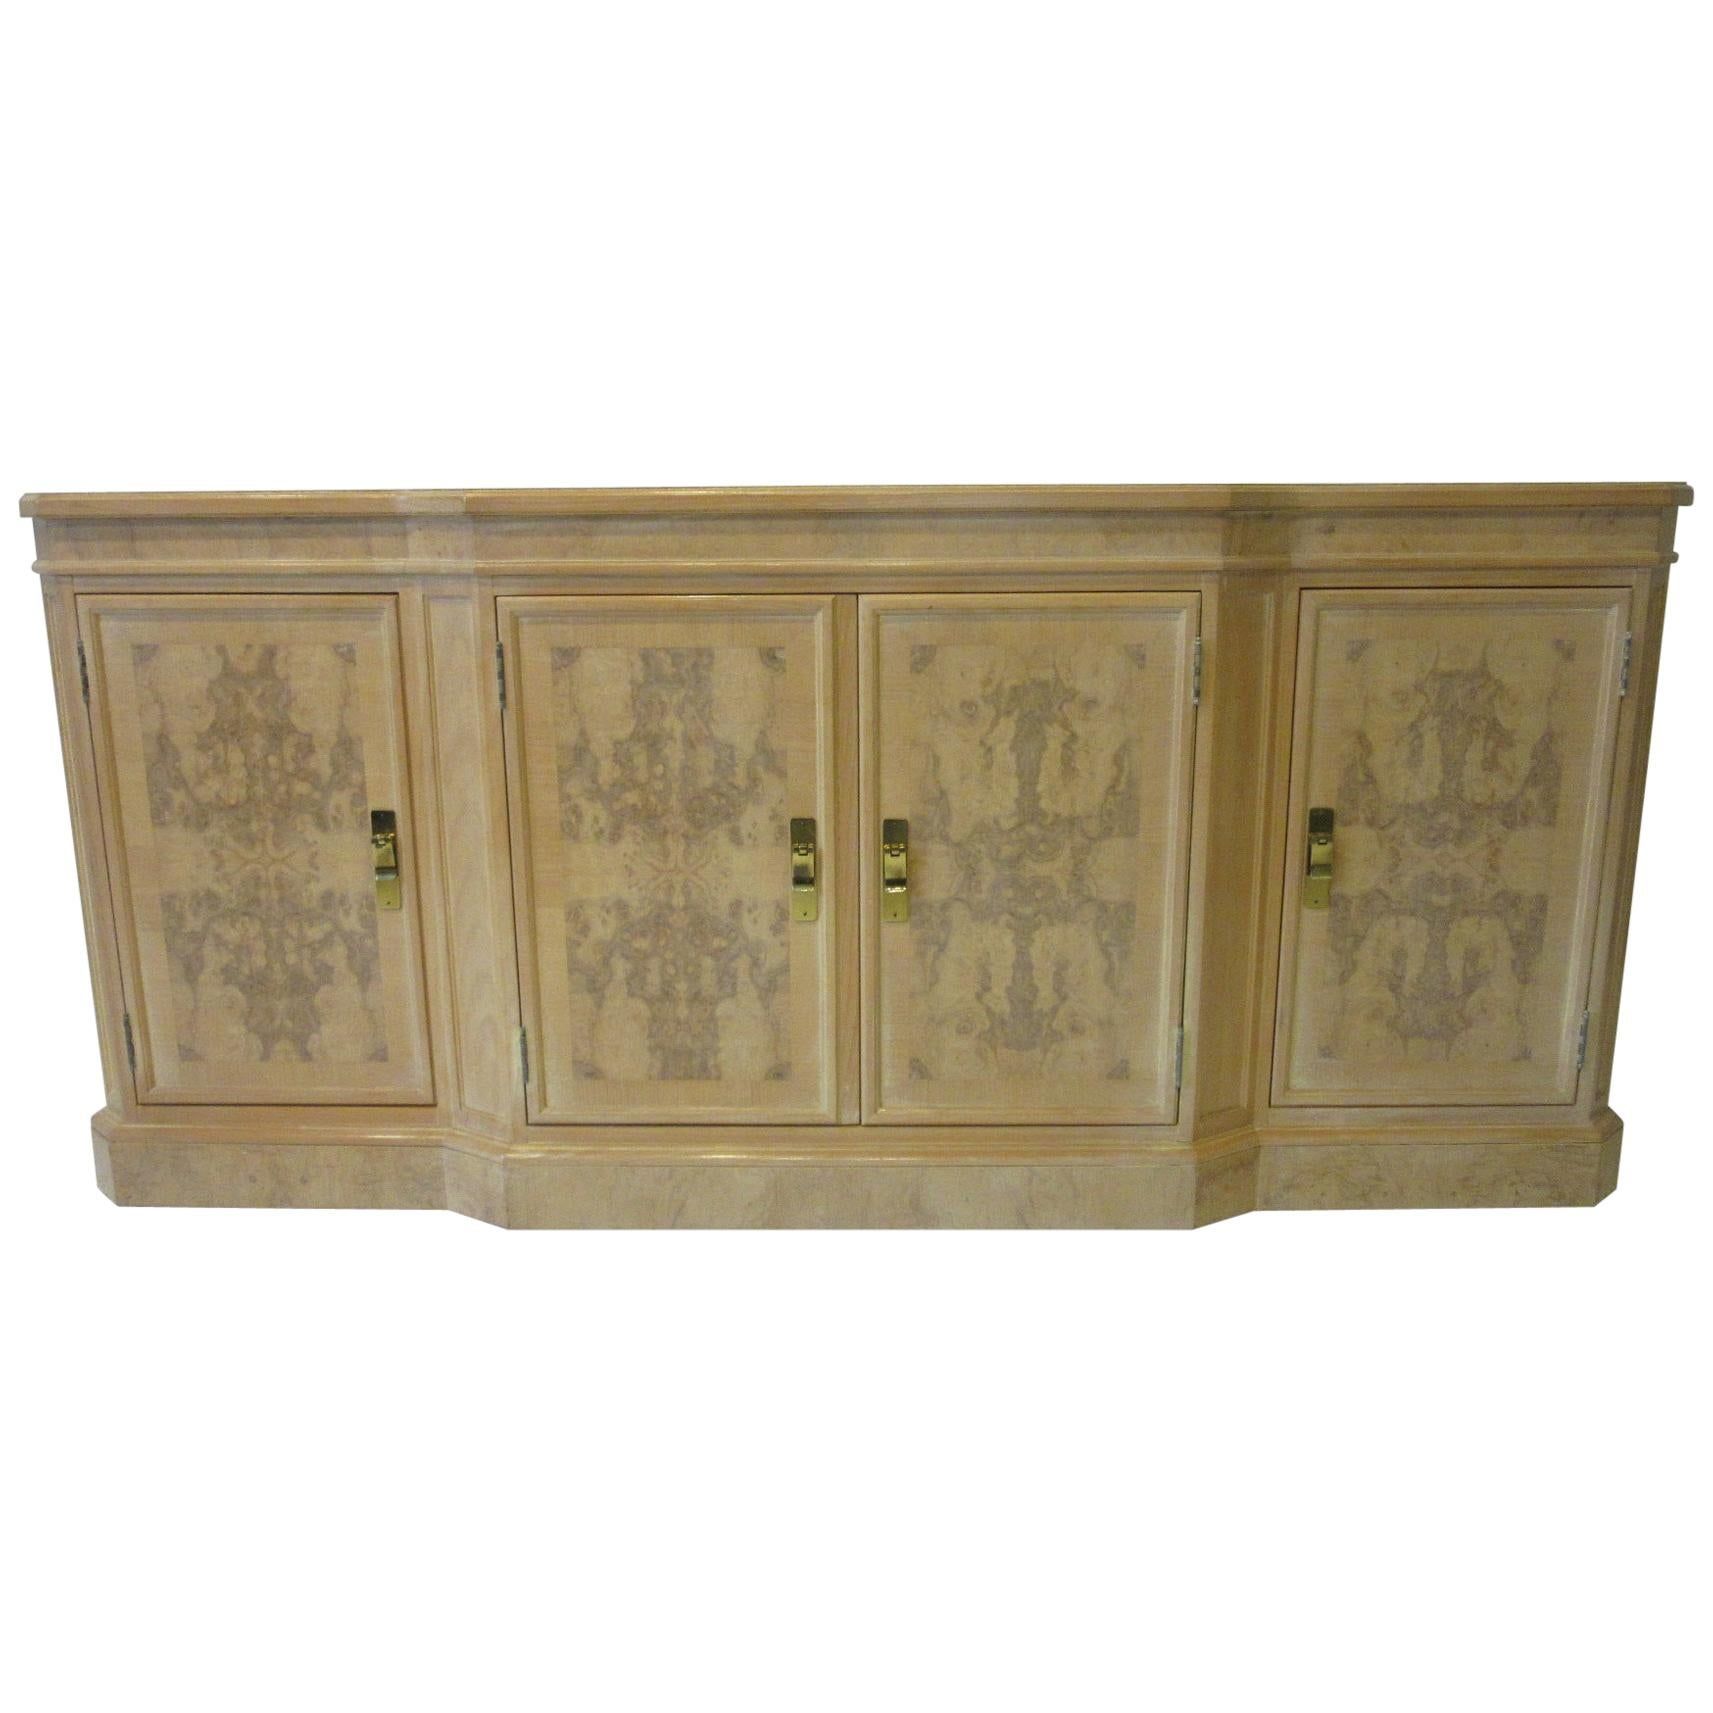 Burl Wood Sideboard / Cabinet by Heritage from the Corinthian Collection